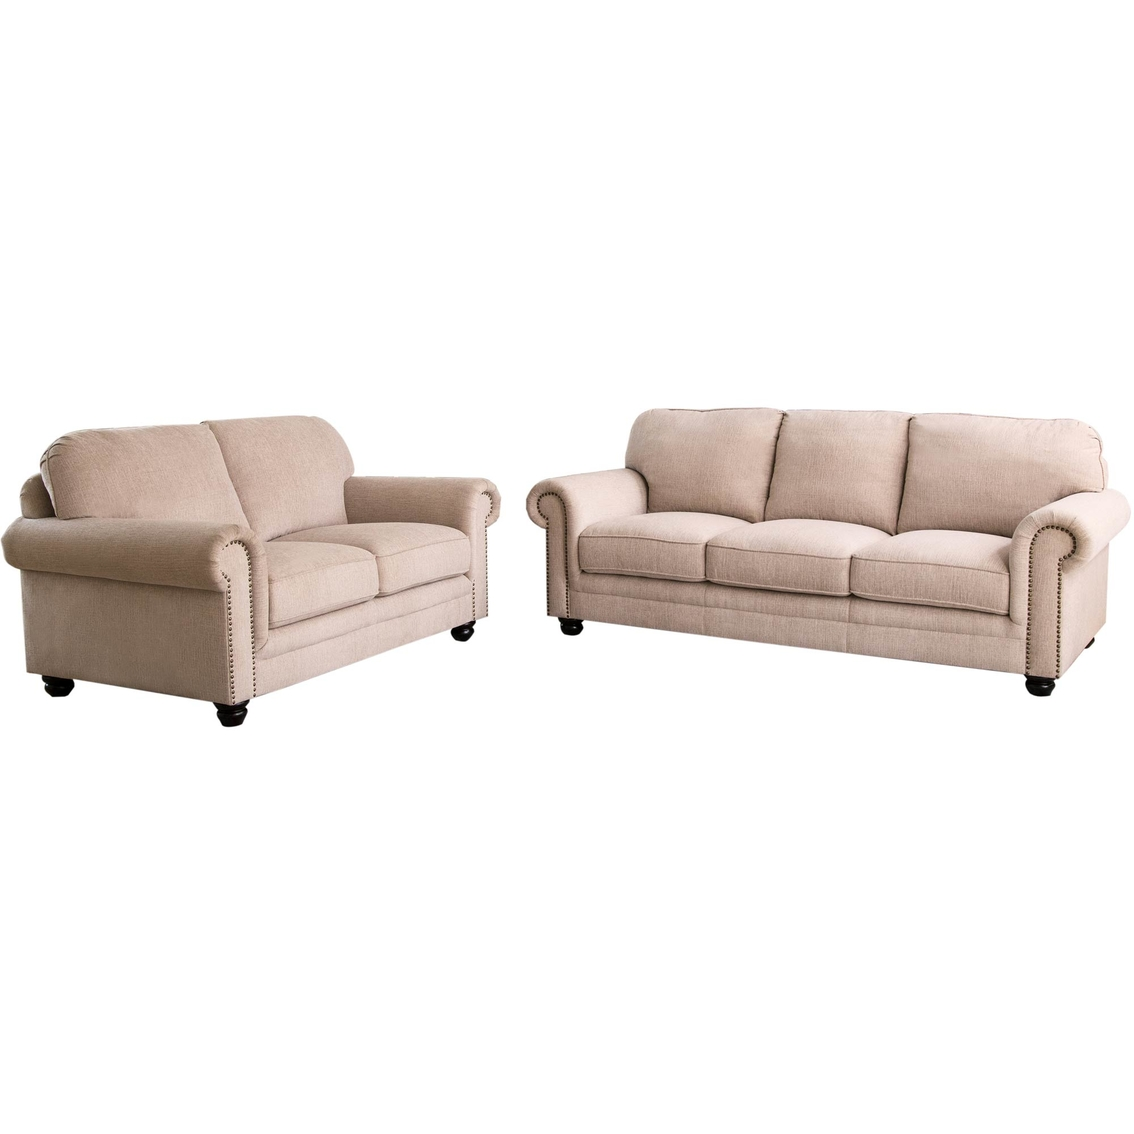 Pleasing Abbyson Solano Fabric Sofa And Loveseat 2 Pc Set Living Caraccident5 Cool Chair Designs And Ideas Caraccident5Info